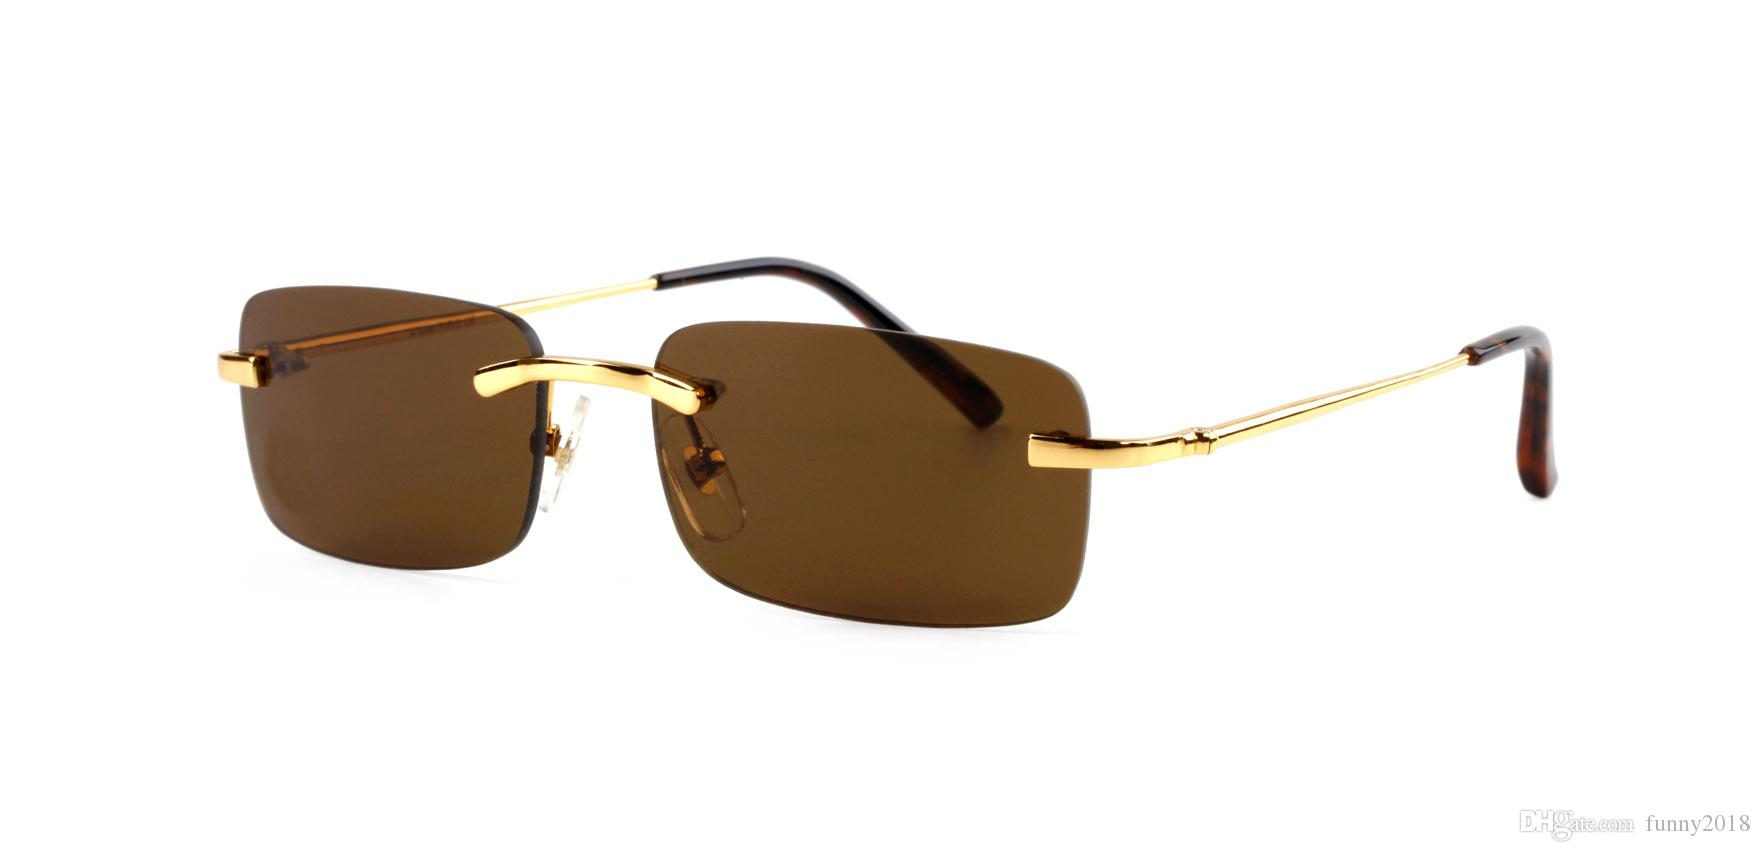 2018 Hot Unisex Mens Square Rimless Red Sunglasses Optical Fine Wire Silver Gold Frame Womens Vintage Buffalo Horn Summer Eyes glasses